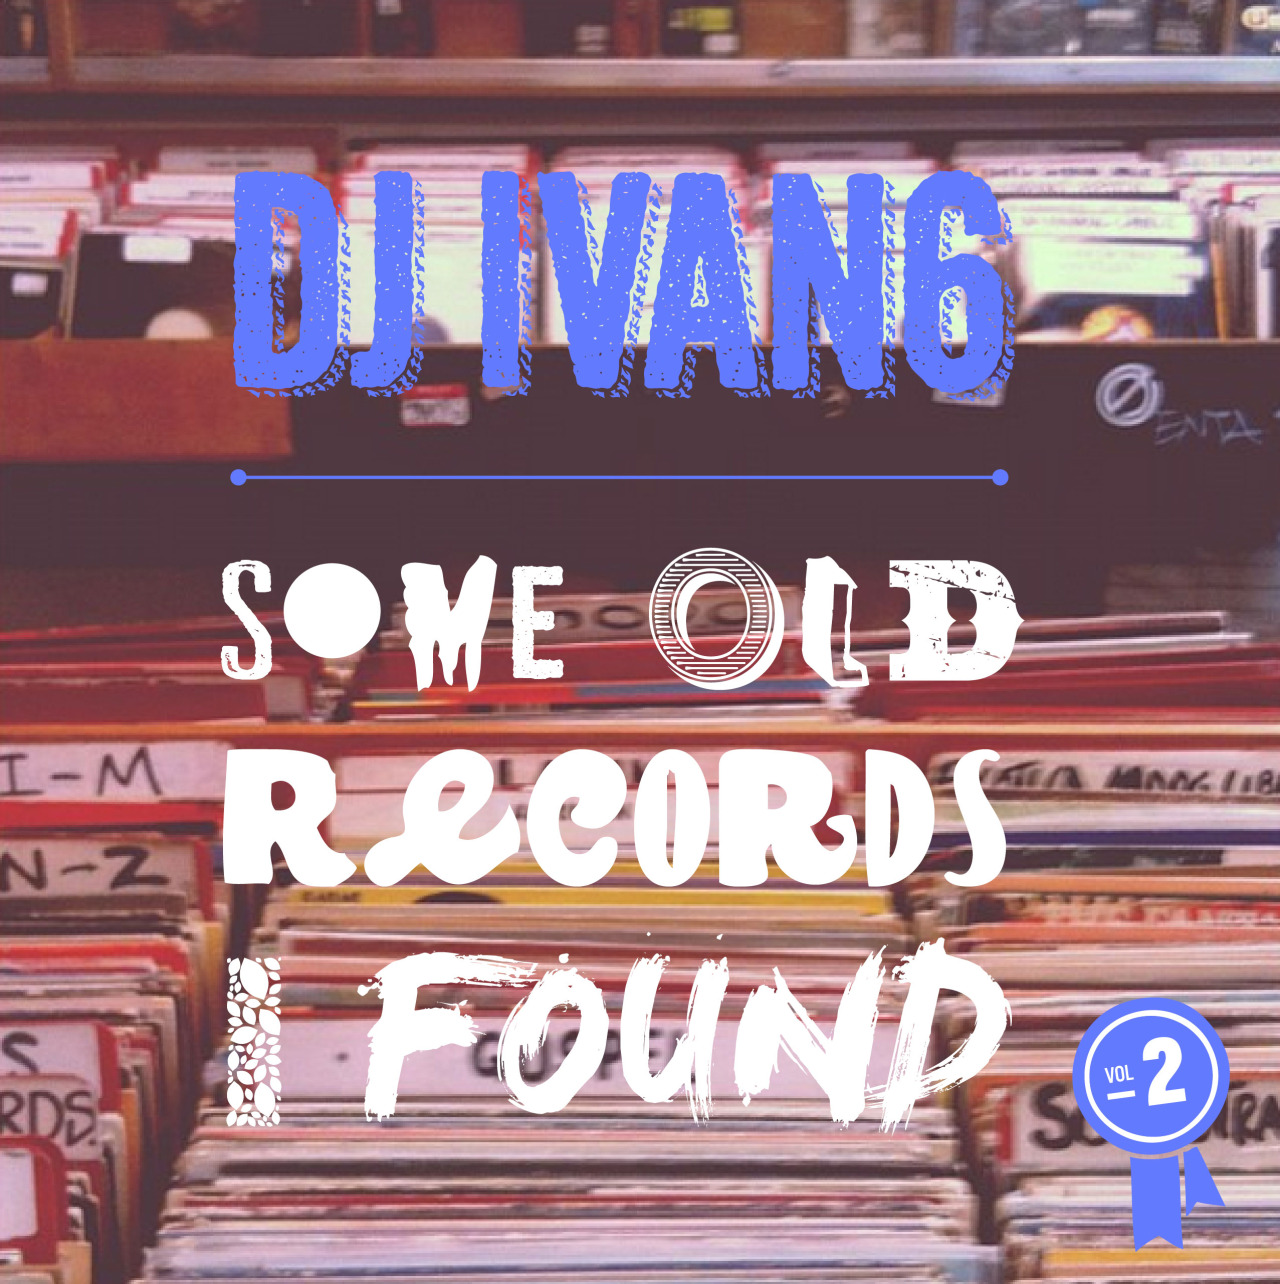 DJ IVAN6 - SOME OLD RECORDS I FOUND VOL.2   Holdin' Court Resident Dj Ivan6 has just released  Volume two  of his Some Old Records I Found series:   Various old records I've found from various crates in various places around various parts of the UK and Germany.     Feat. on this mix:     The Dells, Joni Mitchell, Freddie Waters, War, The Honey Cone, Curtis Mayfield, Cymande, BT Express, Stevie Wonder, Eela Craig, Arcus, Hay Fever + more     All vinyl, no Serato.        Enjoy.